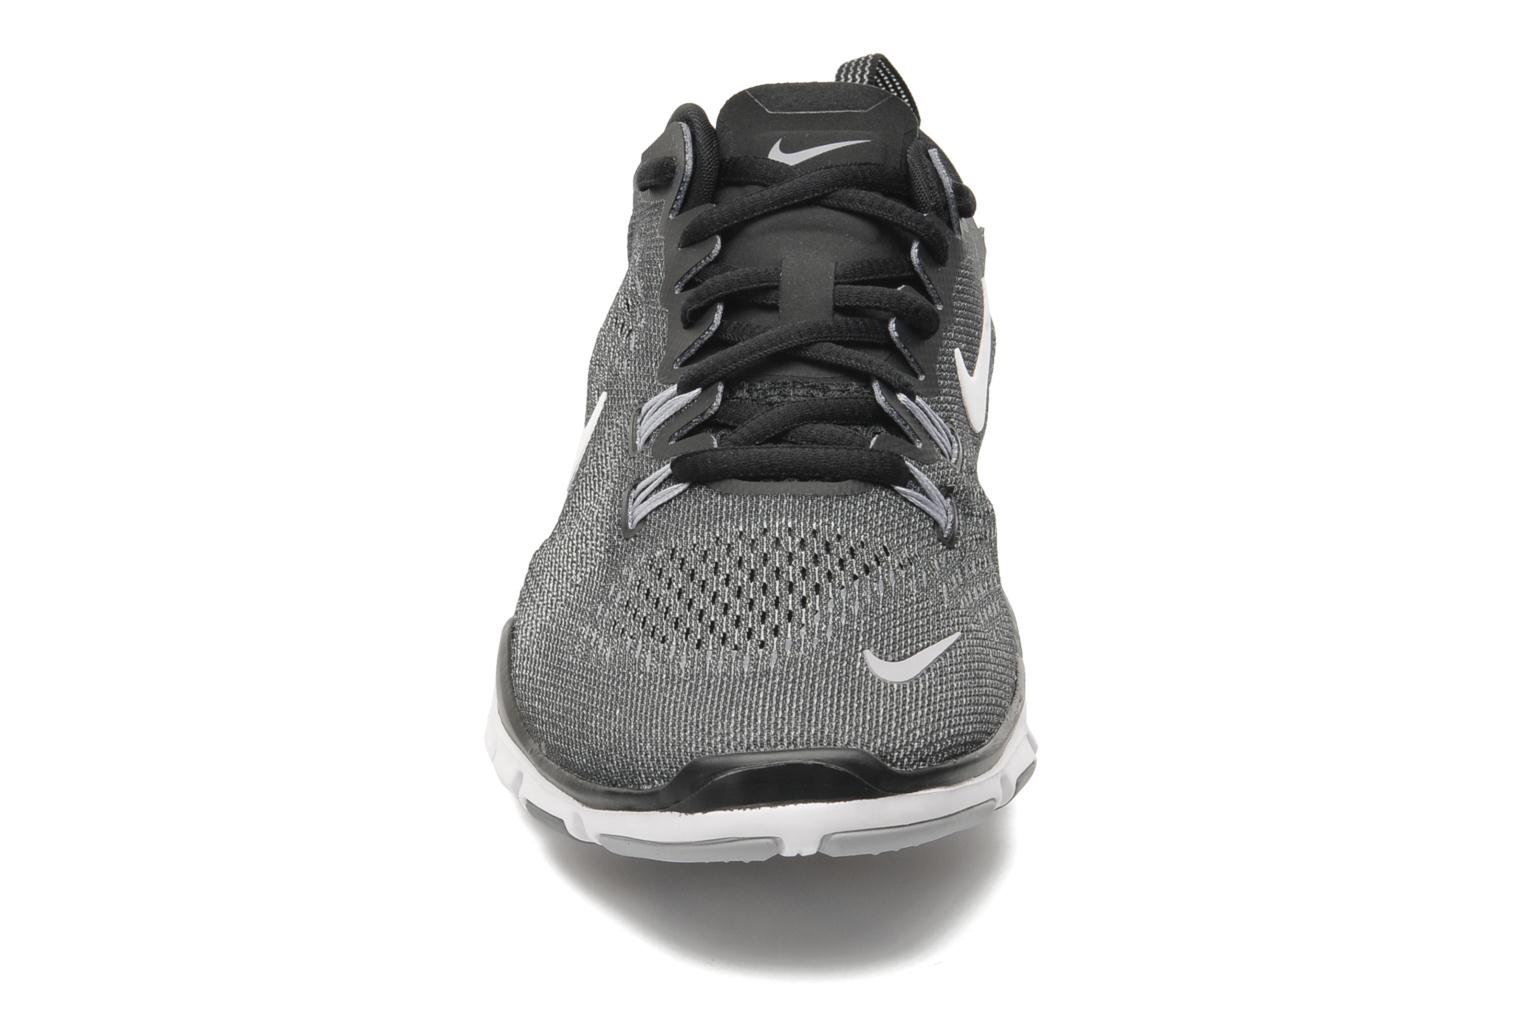 Wmns Nike Free 5.0 Tr Fit 4 Black/White-Cool Grey-Wlf Grey